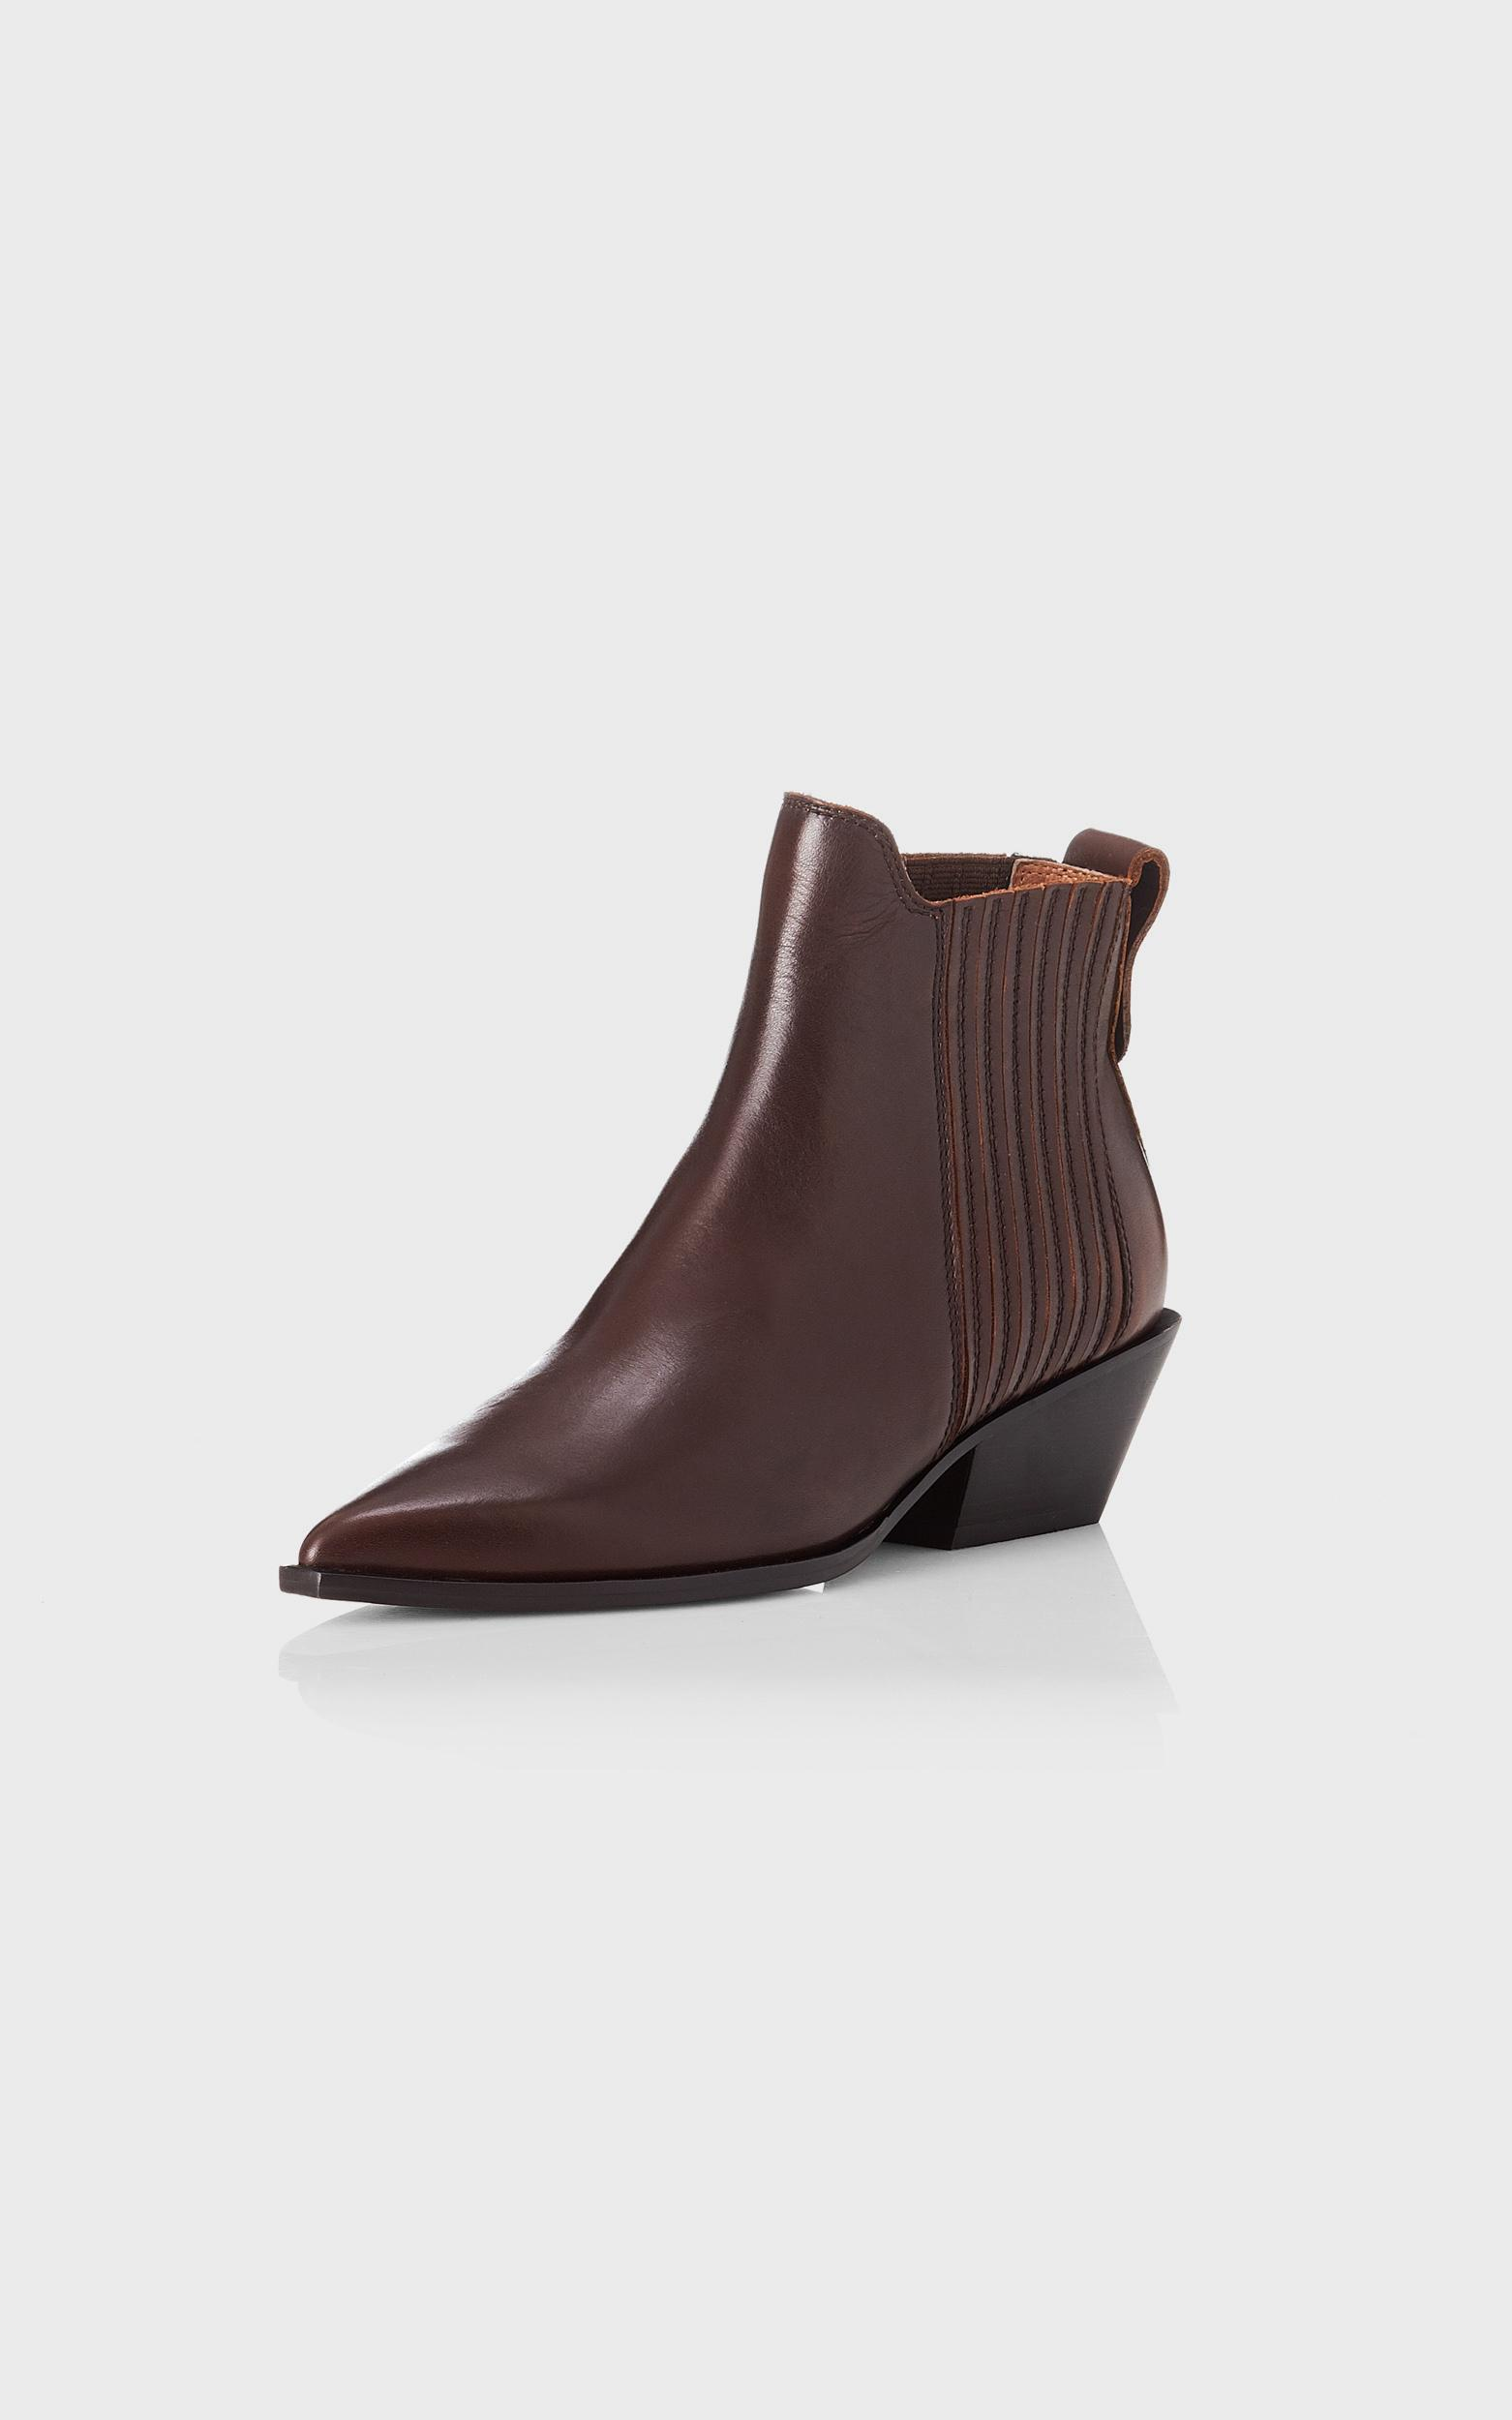 Alias Mae - Seth Boots in Choc Burnished - 5.5, BRN1, hi-res image number null